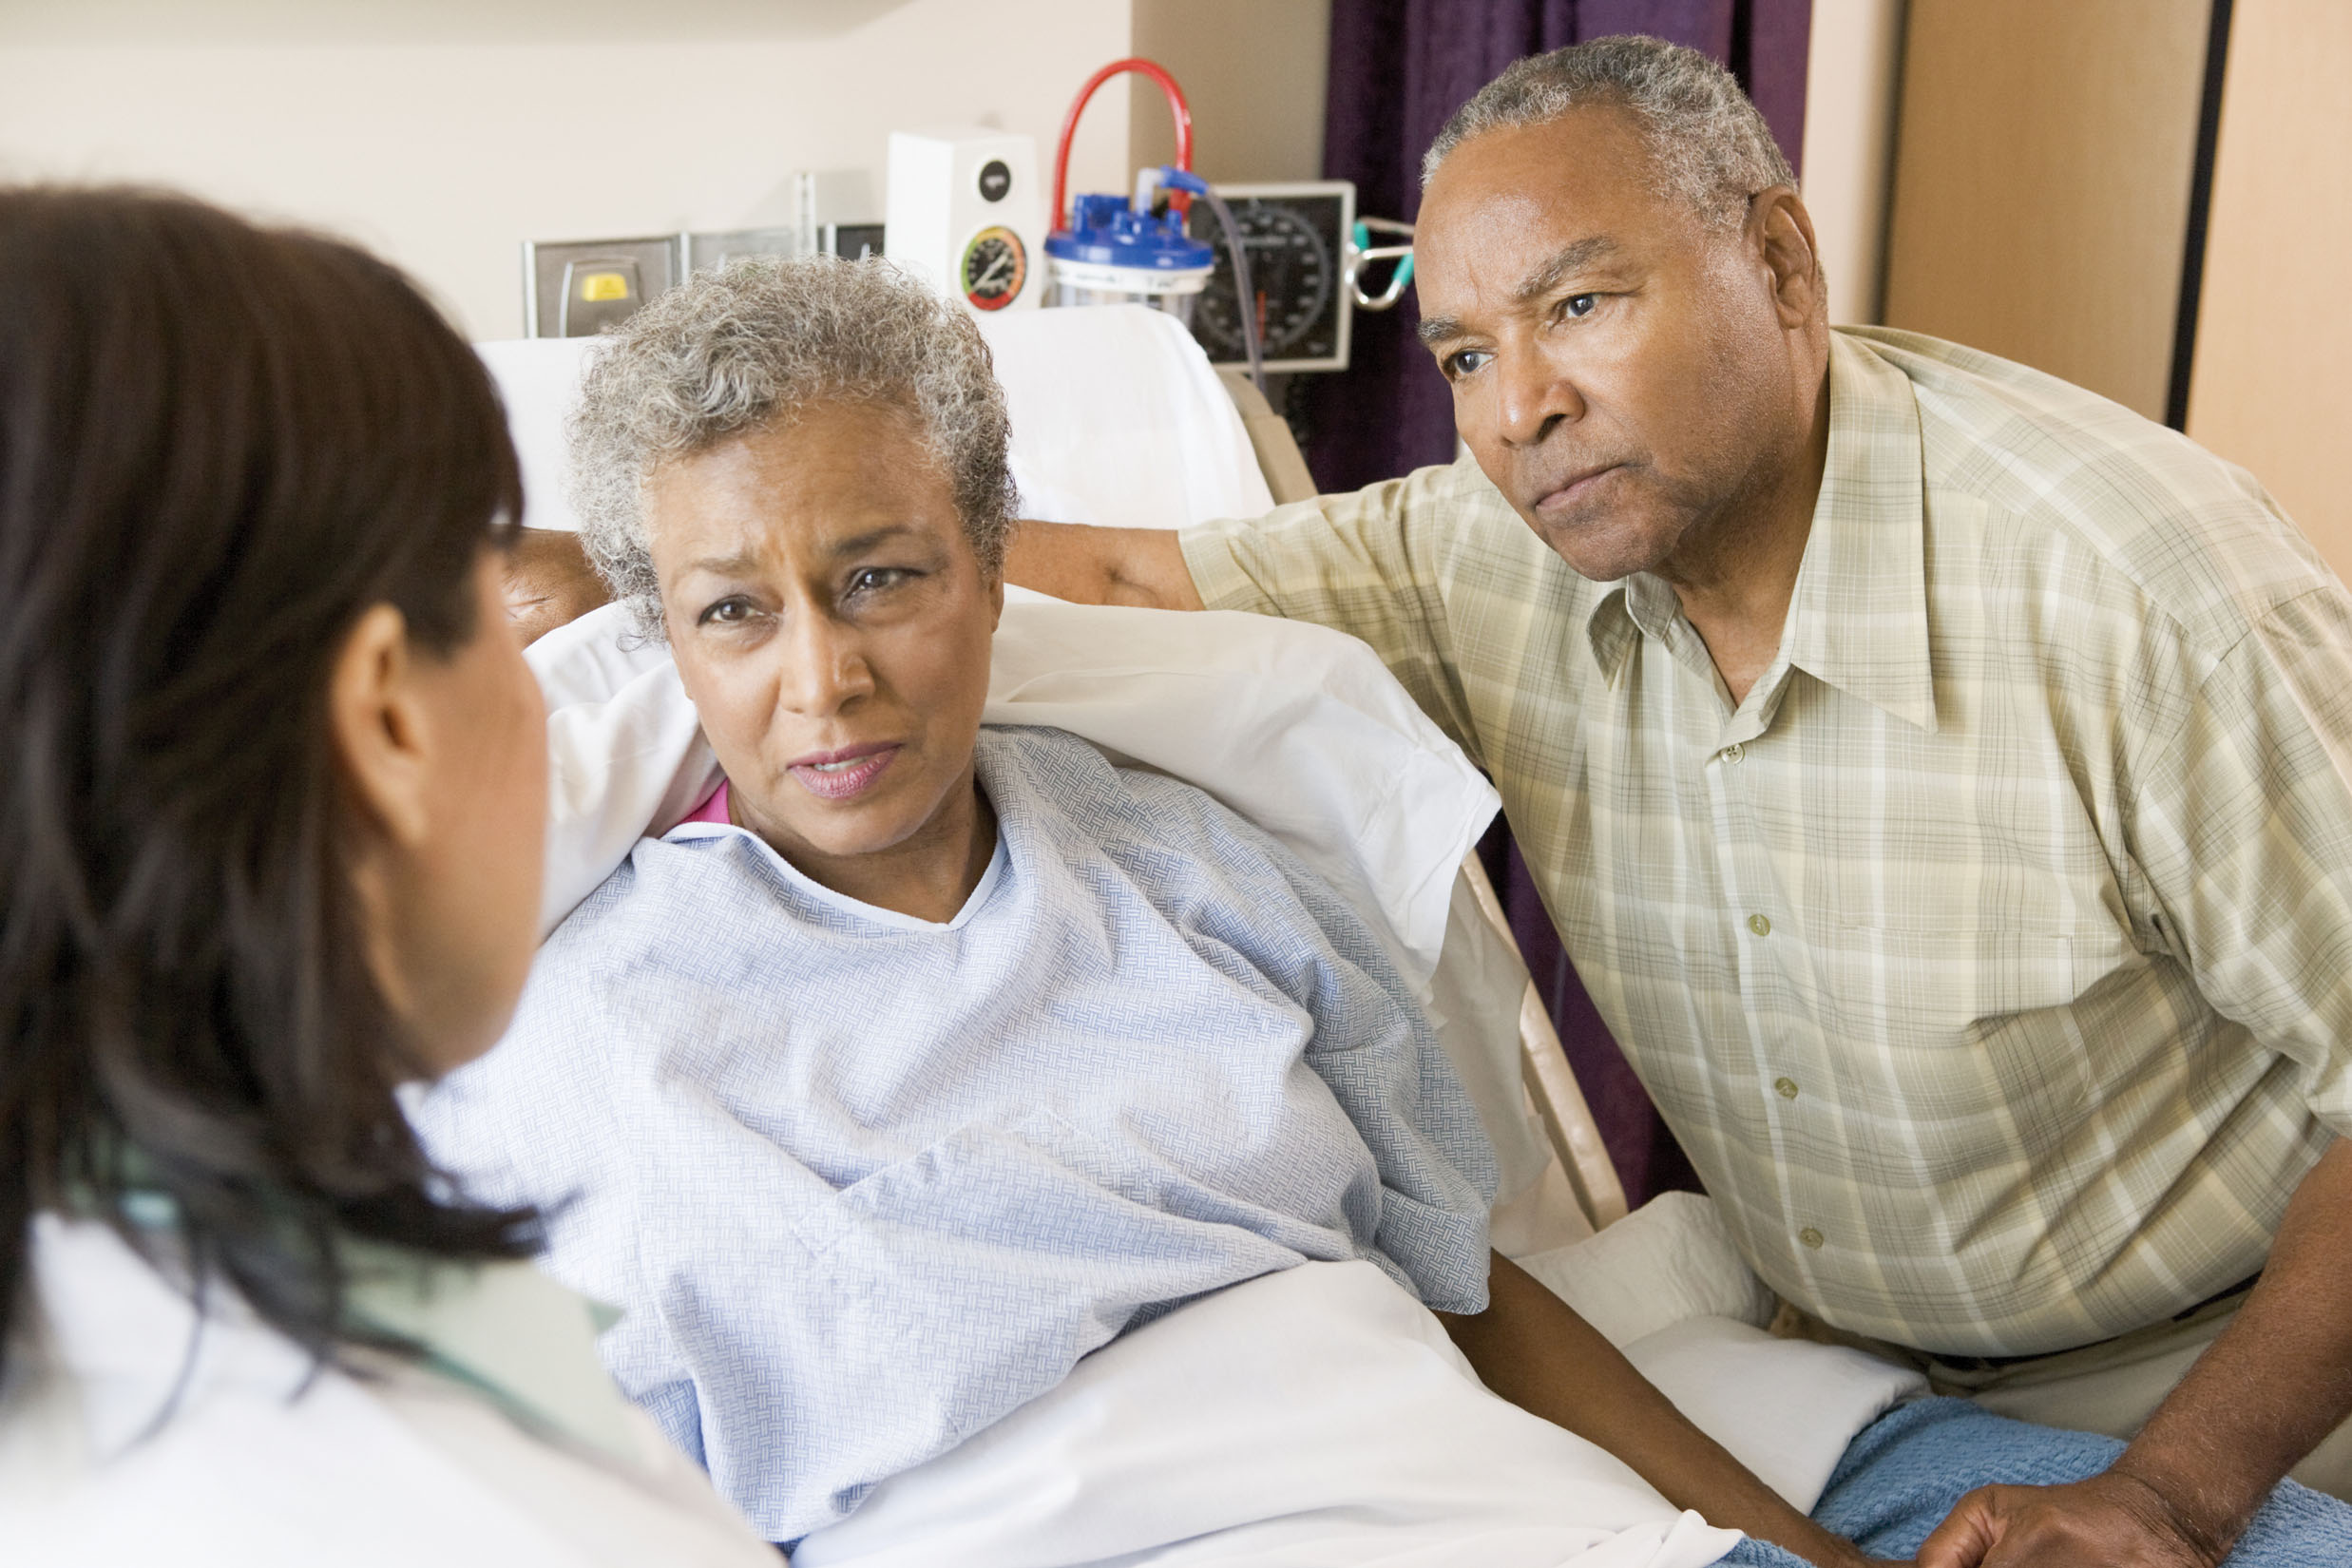 dementia and alzheimer s disease including care nursing di Aggregate payments for healthcare, long-term care and hospice are projected to   while alzheimer's disease presents with a more global decline, vascular   than the likely diagnosis is parkinson's disease with dementia.